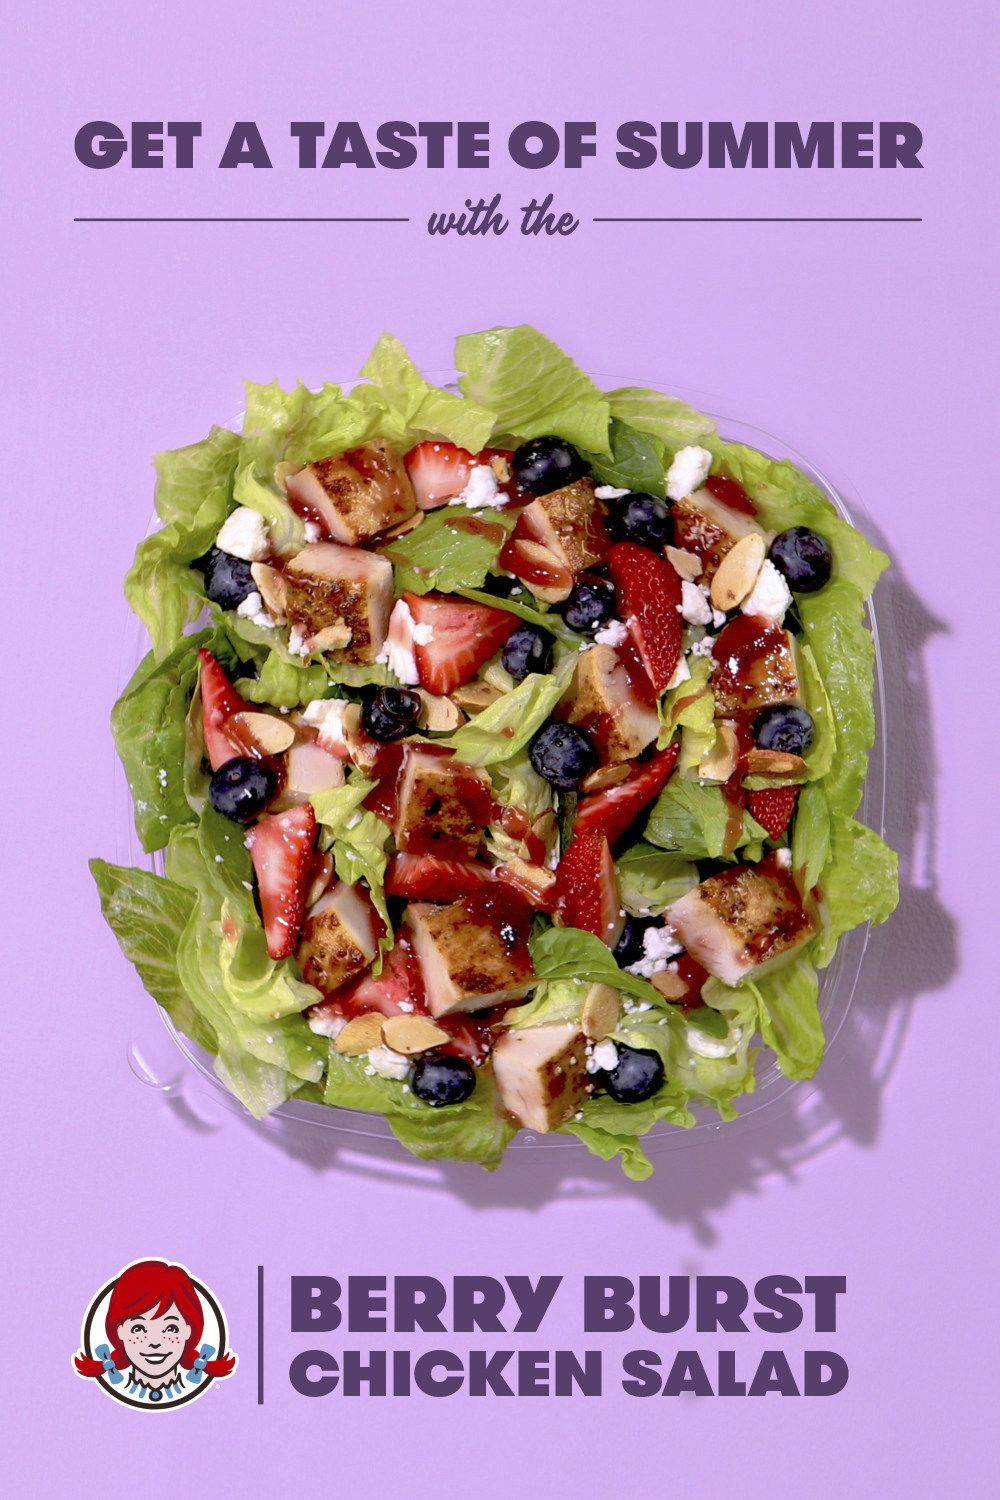 Wendy's Freshly Made Berry Burst Chicken Salad Makes an Encore This Summer